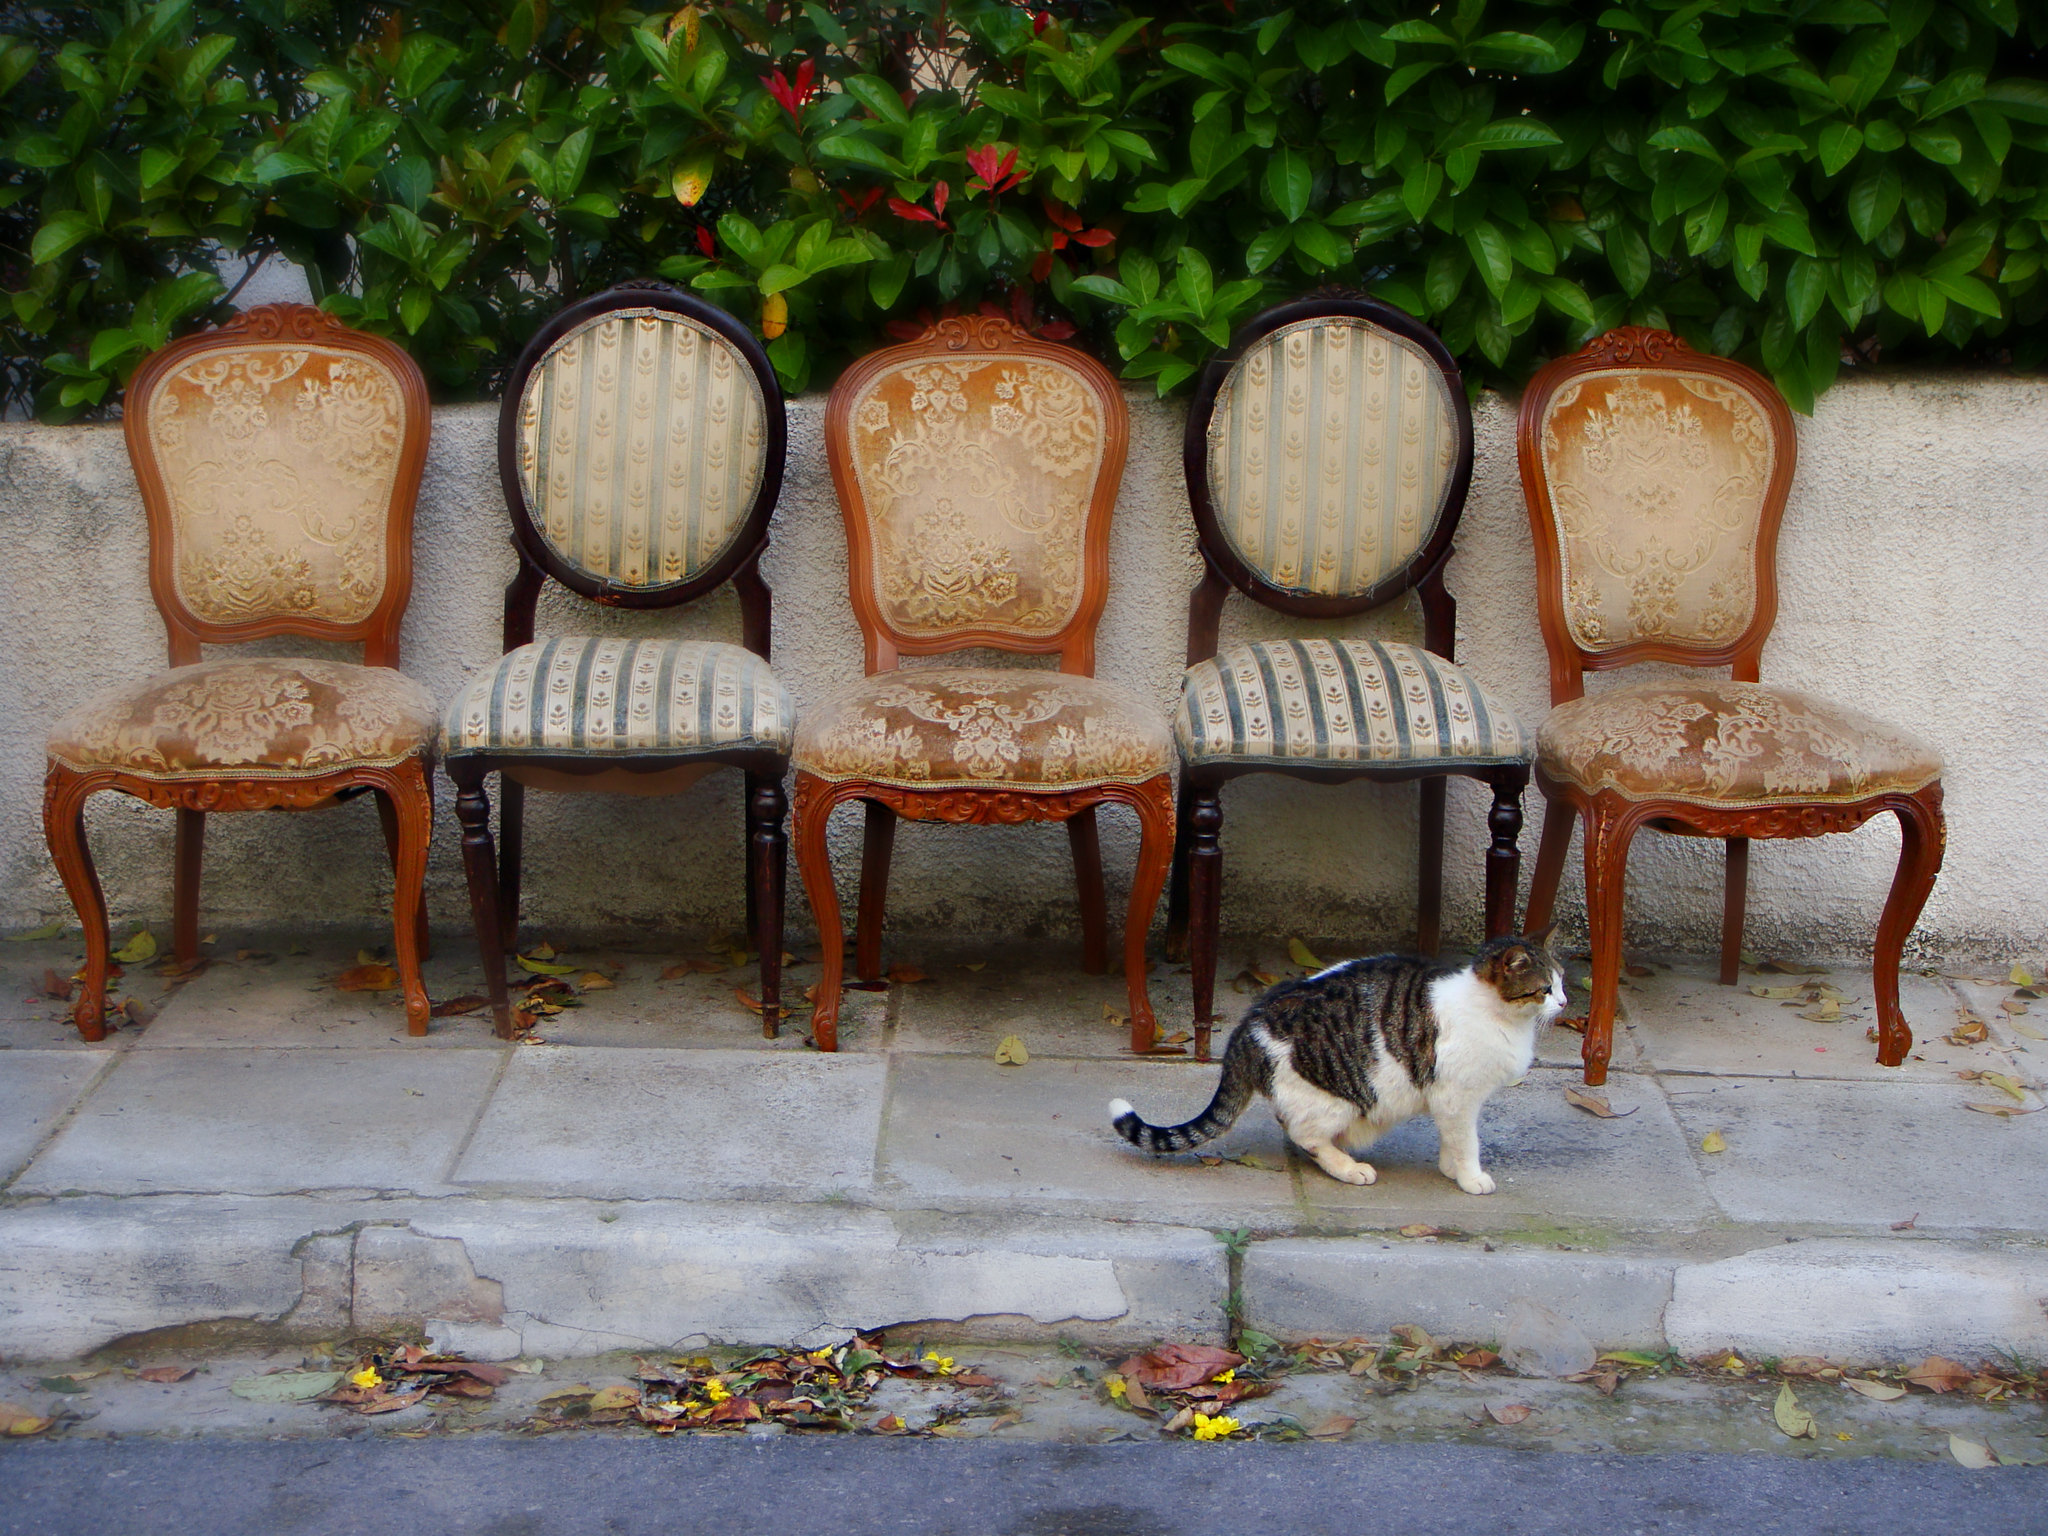 five old chairs and a cat